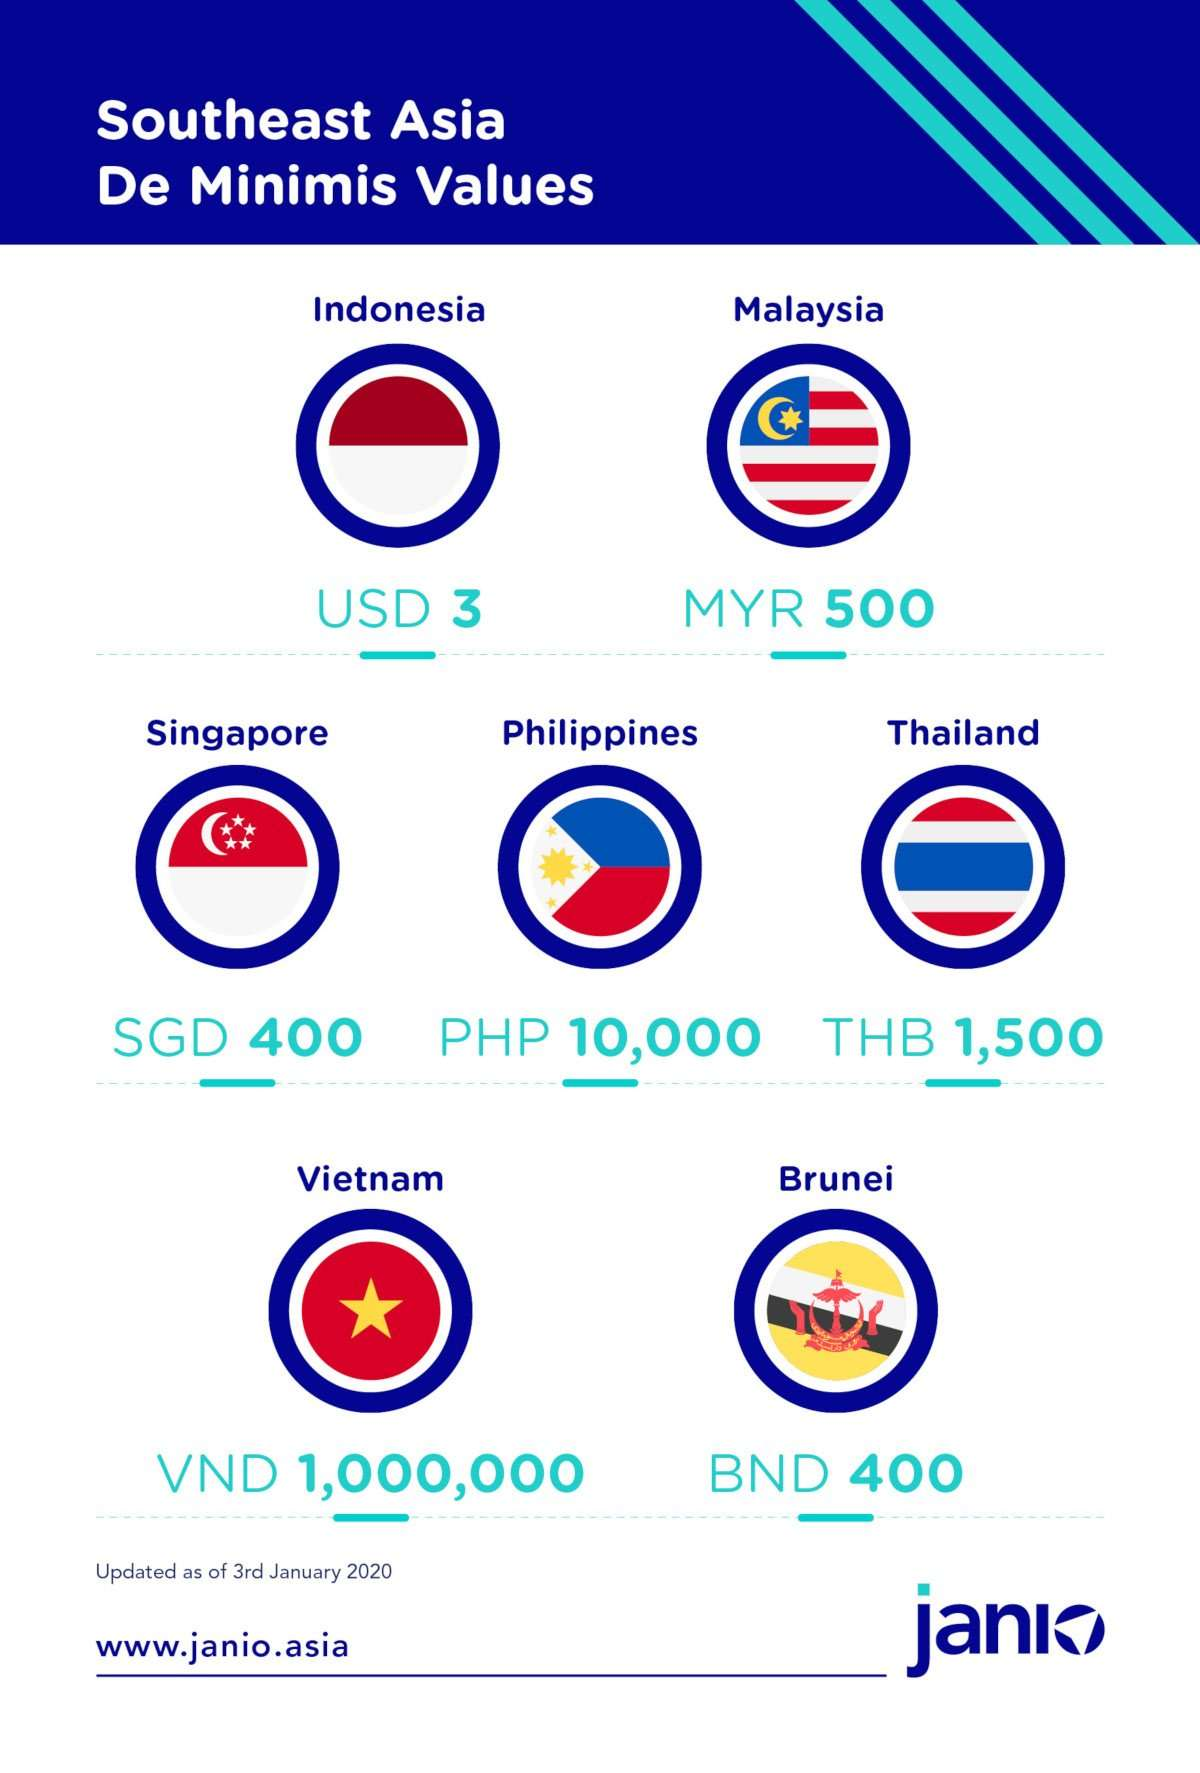 De Minimis Values in Southeast Asia - USD 3 Indonesia, MYR 500 Malaysia, SGD 400 Singapore, PHP 10,000 Philippines, THB 1,500 Thailand, VND 1,000,000 Vietnam, BND 400 Brunei